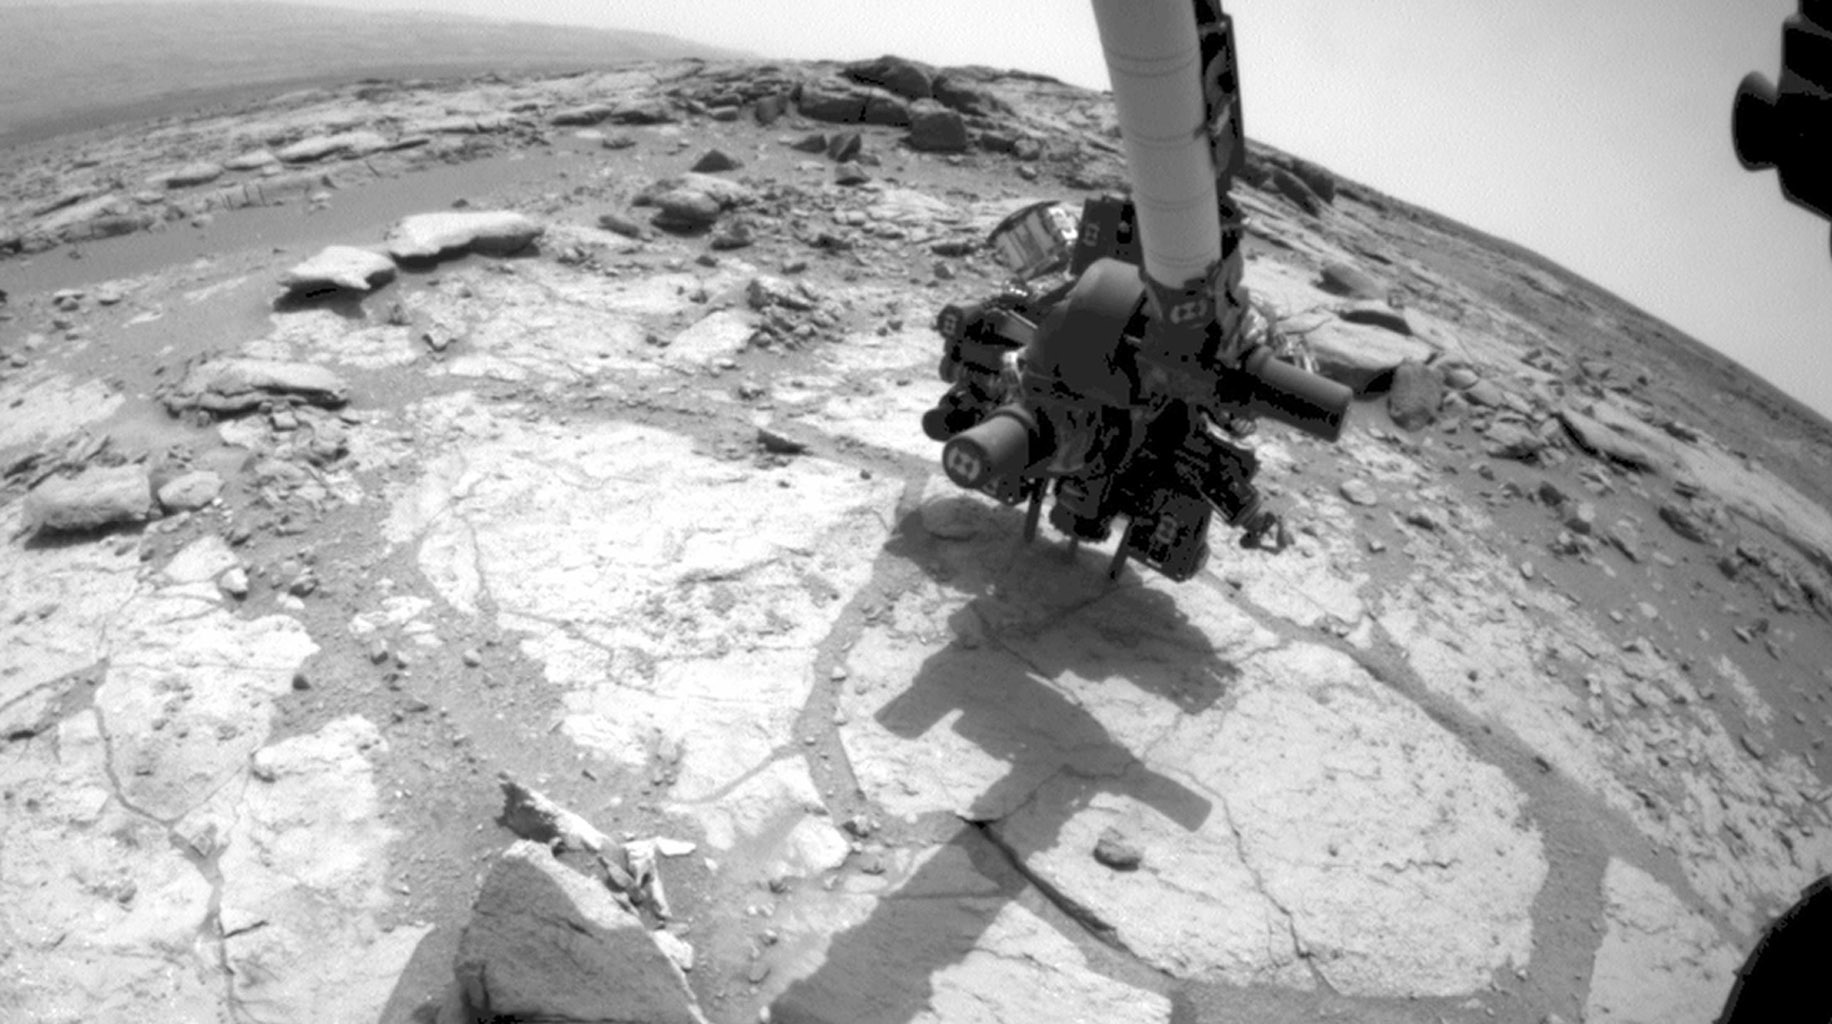 This frame from an animation from NASA's Mars rover Curiosity shows the rover drilling into rock target 'Cumberland.' The drilling was performed during the 279th Martian day, or sol, of the Curiosity's work on Mars (May 19, 2013).